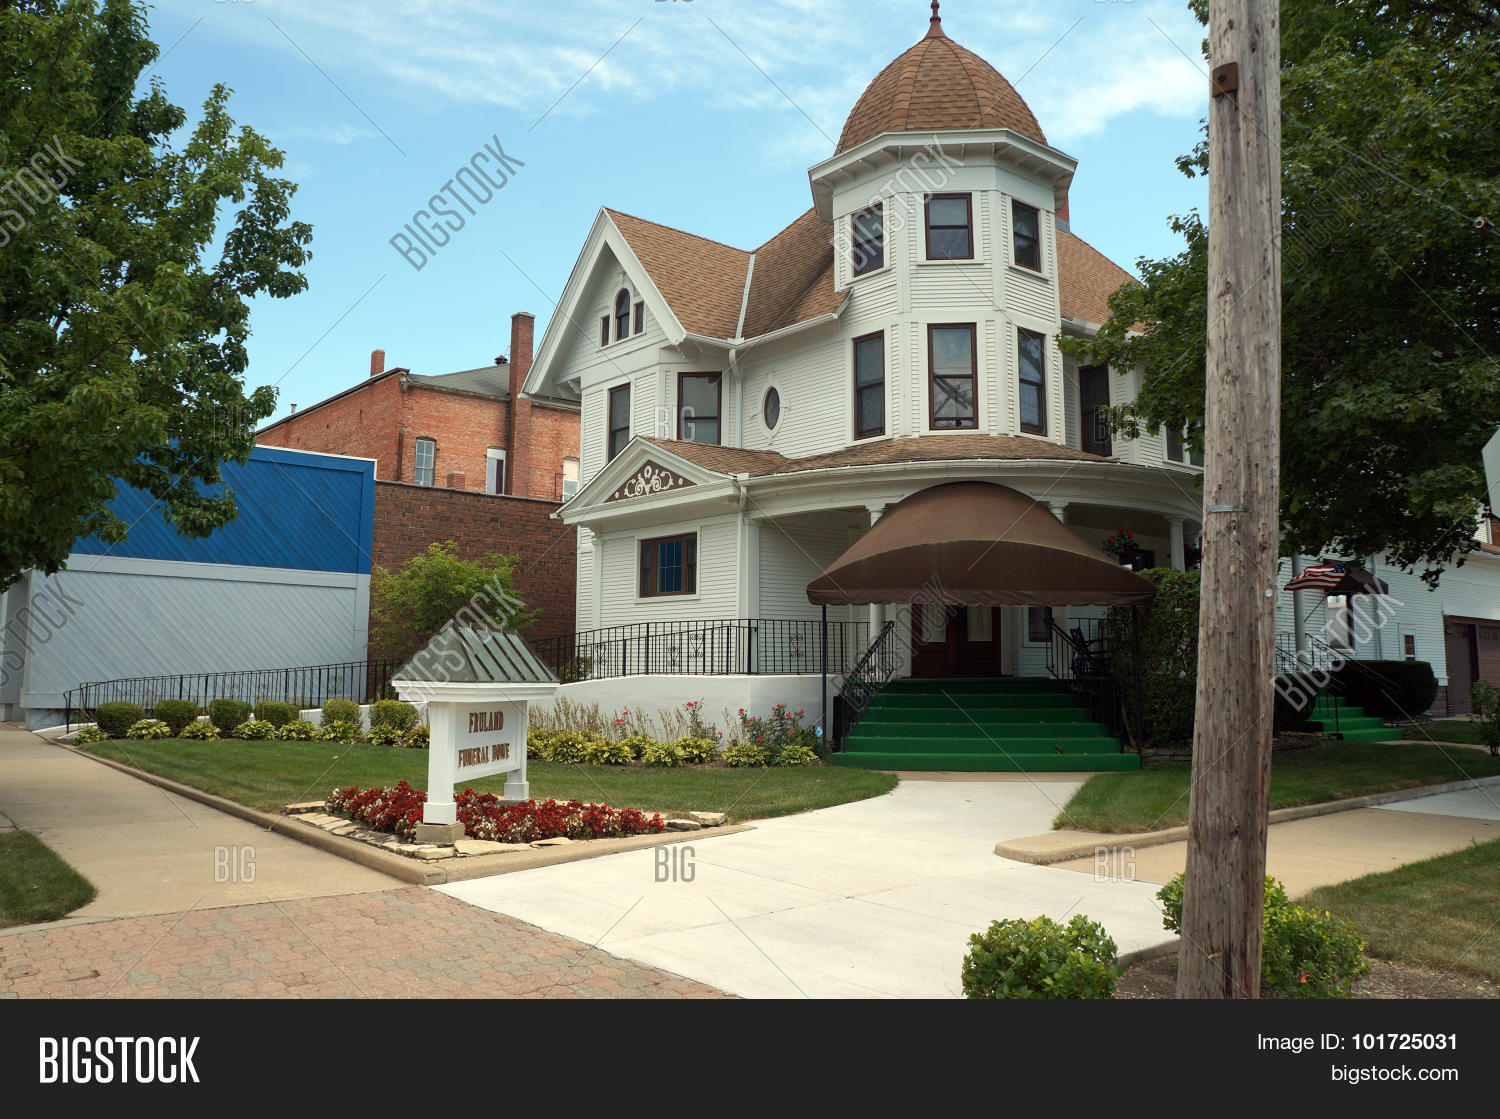 Fruland Funeral Home Image & Photo (Free Trial) | Bigstock